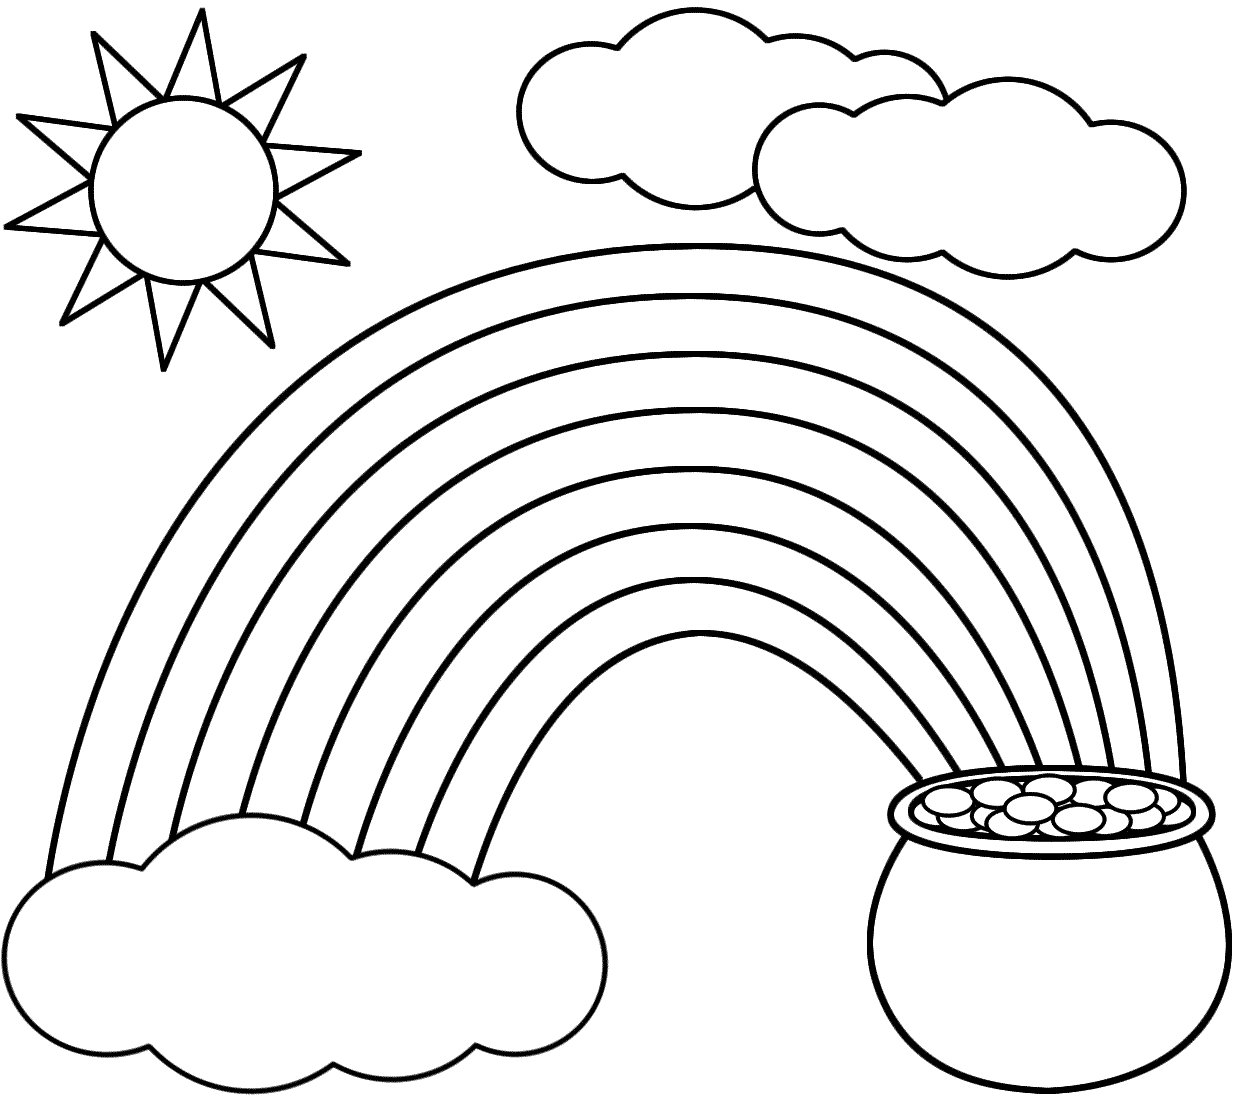 1240x1100 Mr Fancy Hat The Clover Lucky Charms Coloring Page Throughout